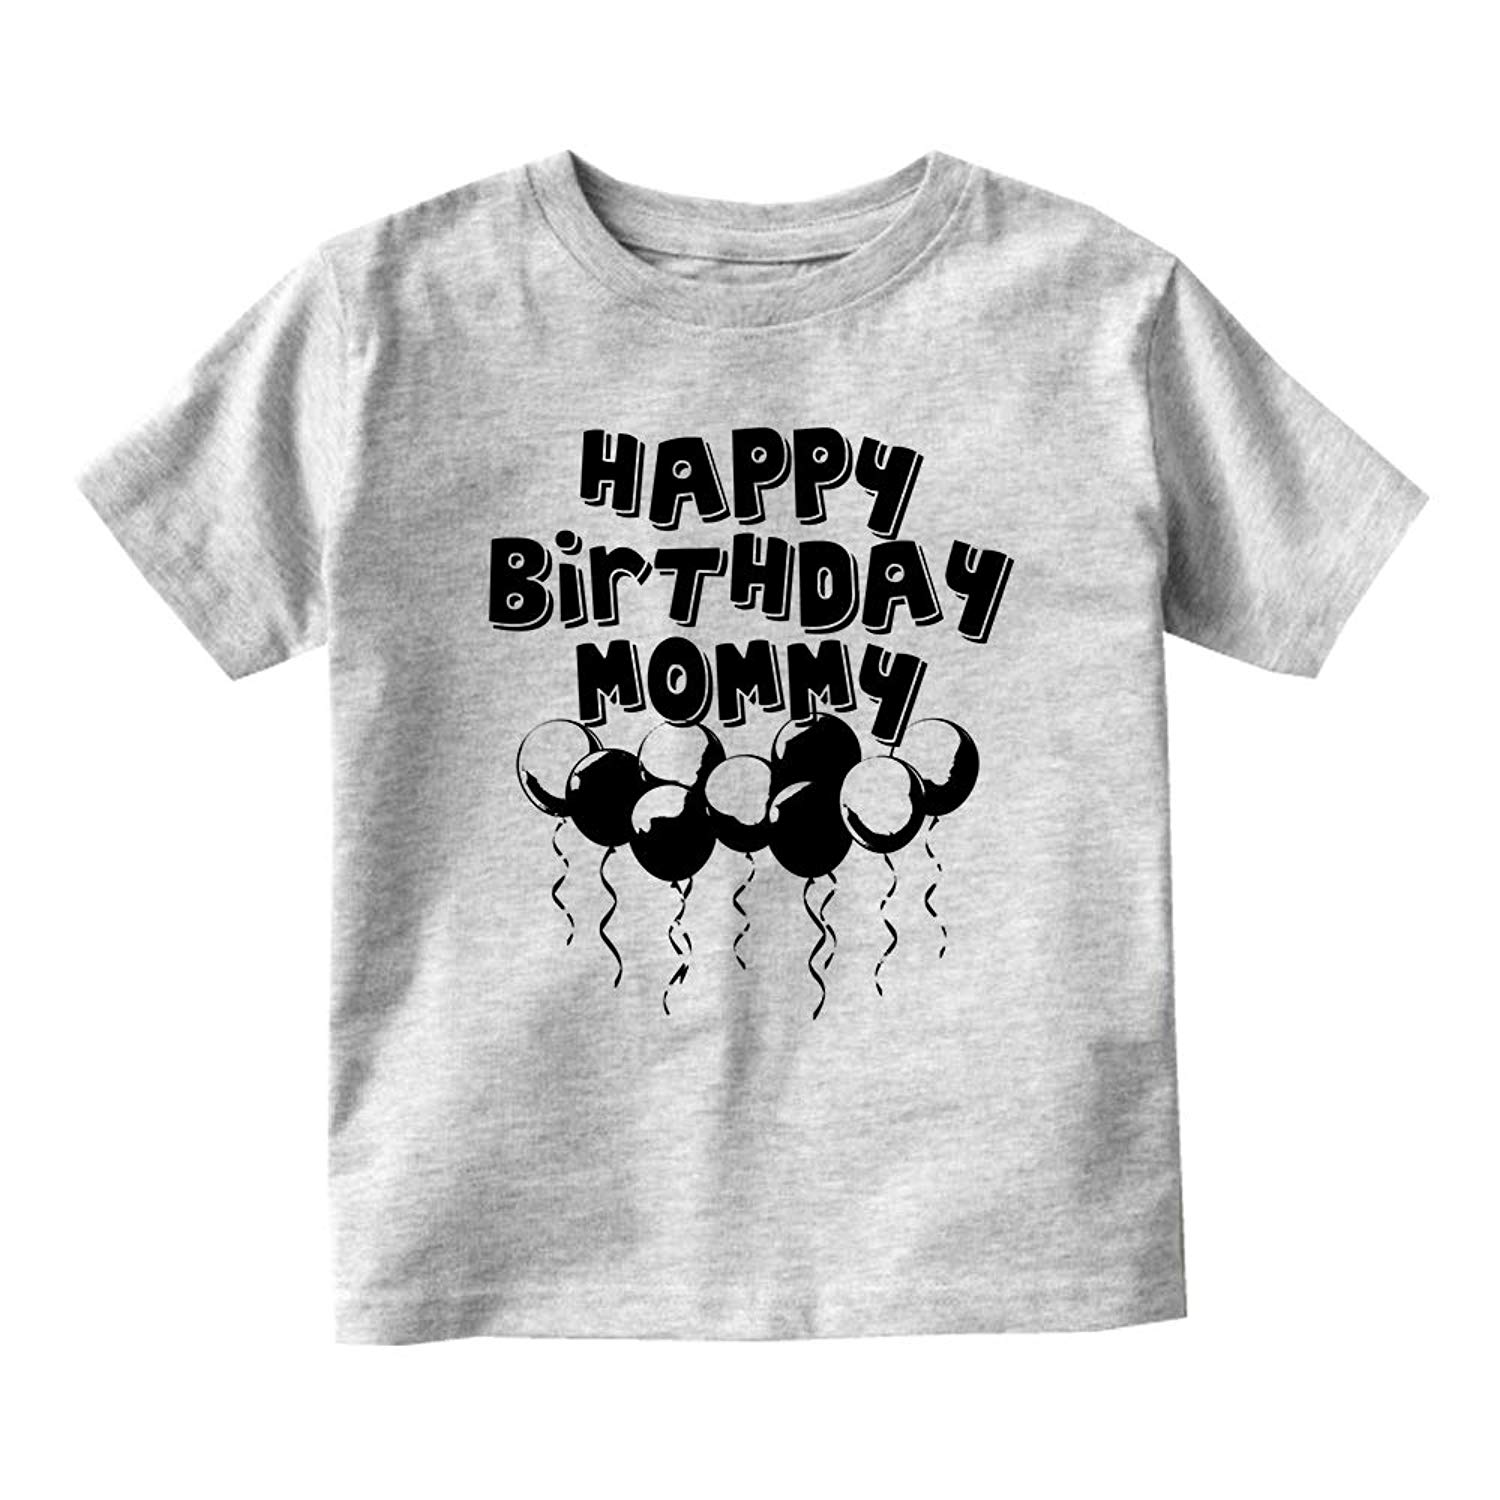 Kids Streetwear Happy Birthday Mommy Balloons Baby Toddler T Shirt Tee